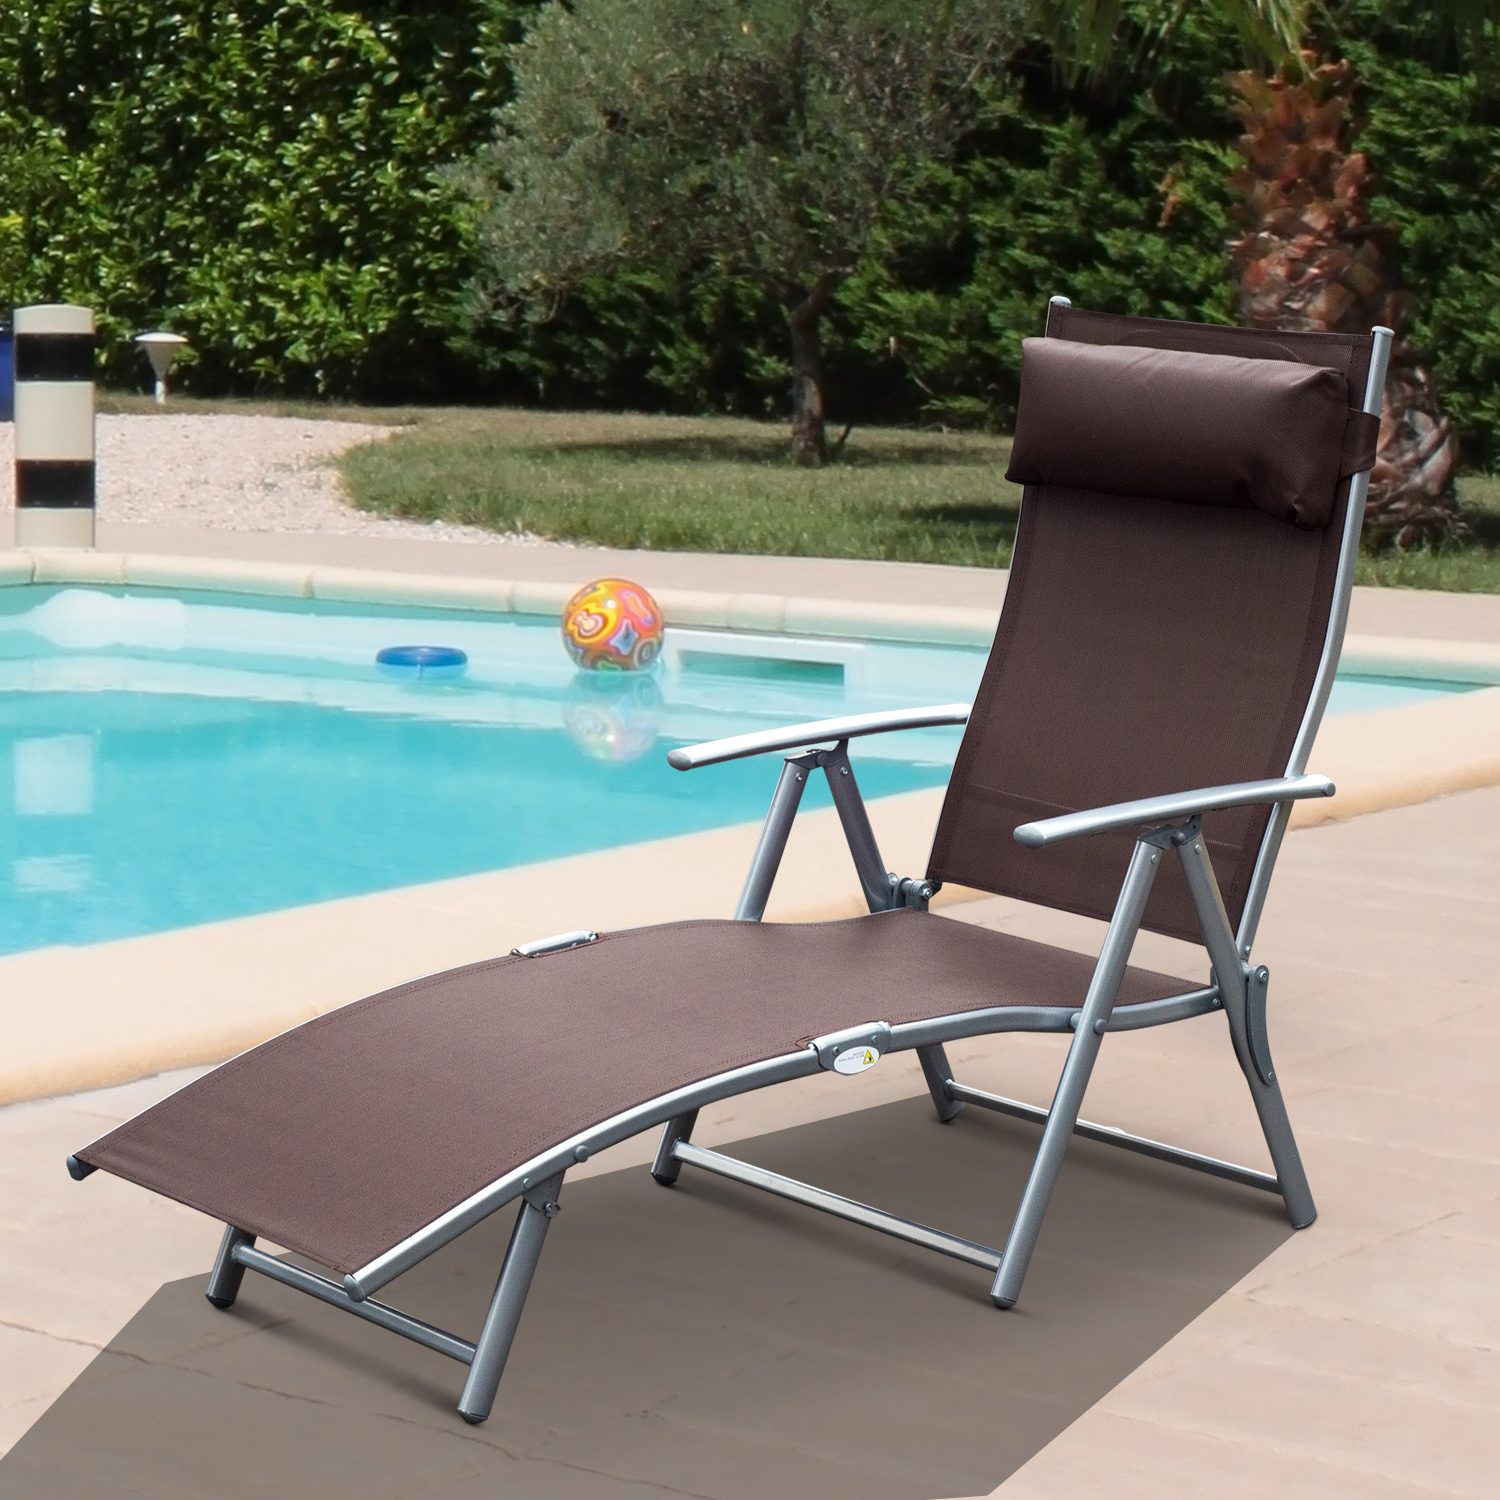 Widely Used Brown Folding Patio Chaise Lounger Chairs Regarding Details About Chaise Lounge Chair Folding Pool Beach Adjustable Patio  Furniture Recliner Brown (View 25 of 25)